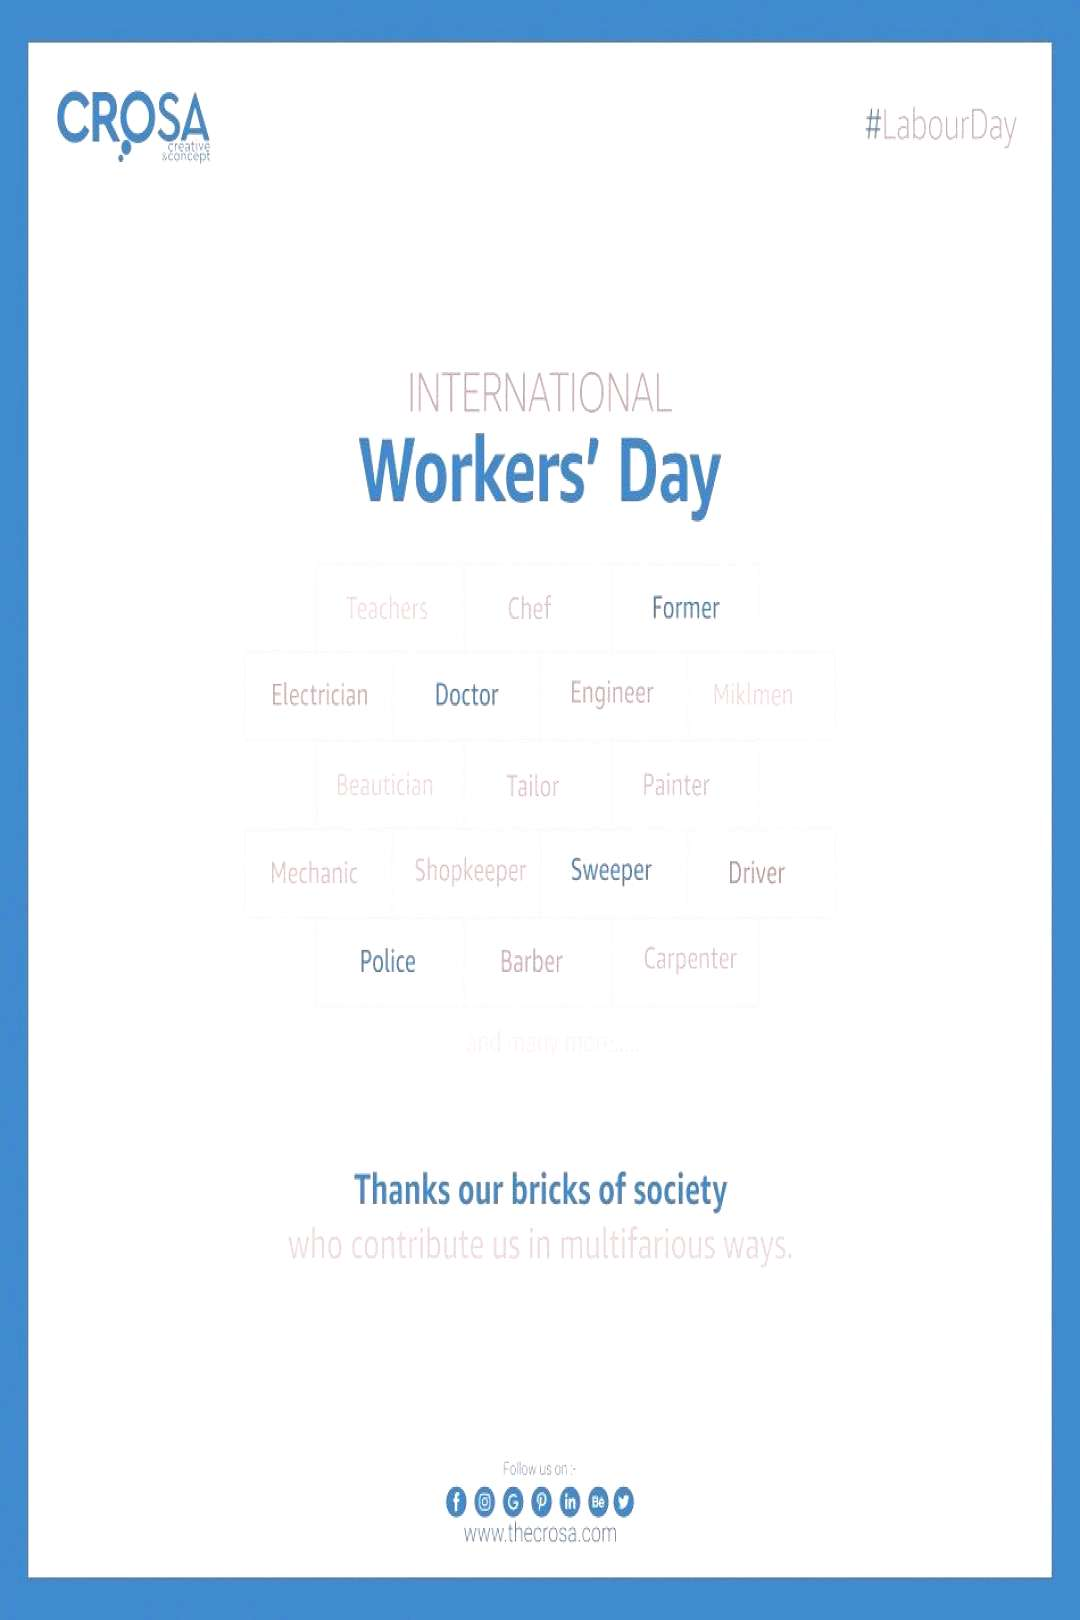 International Workersday Thanks our bricks of the society. Their unconditional contribution make o